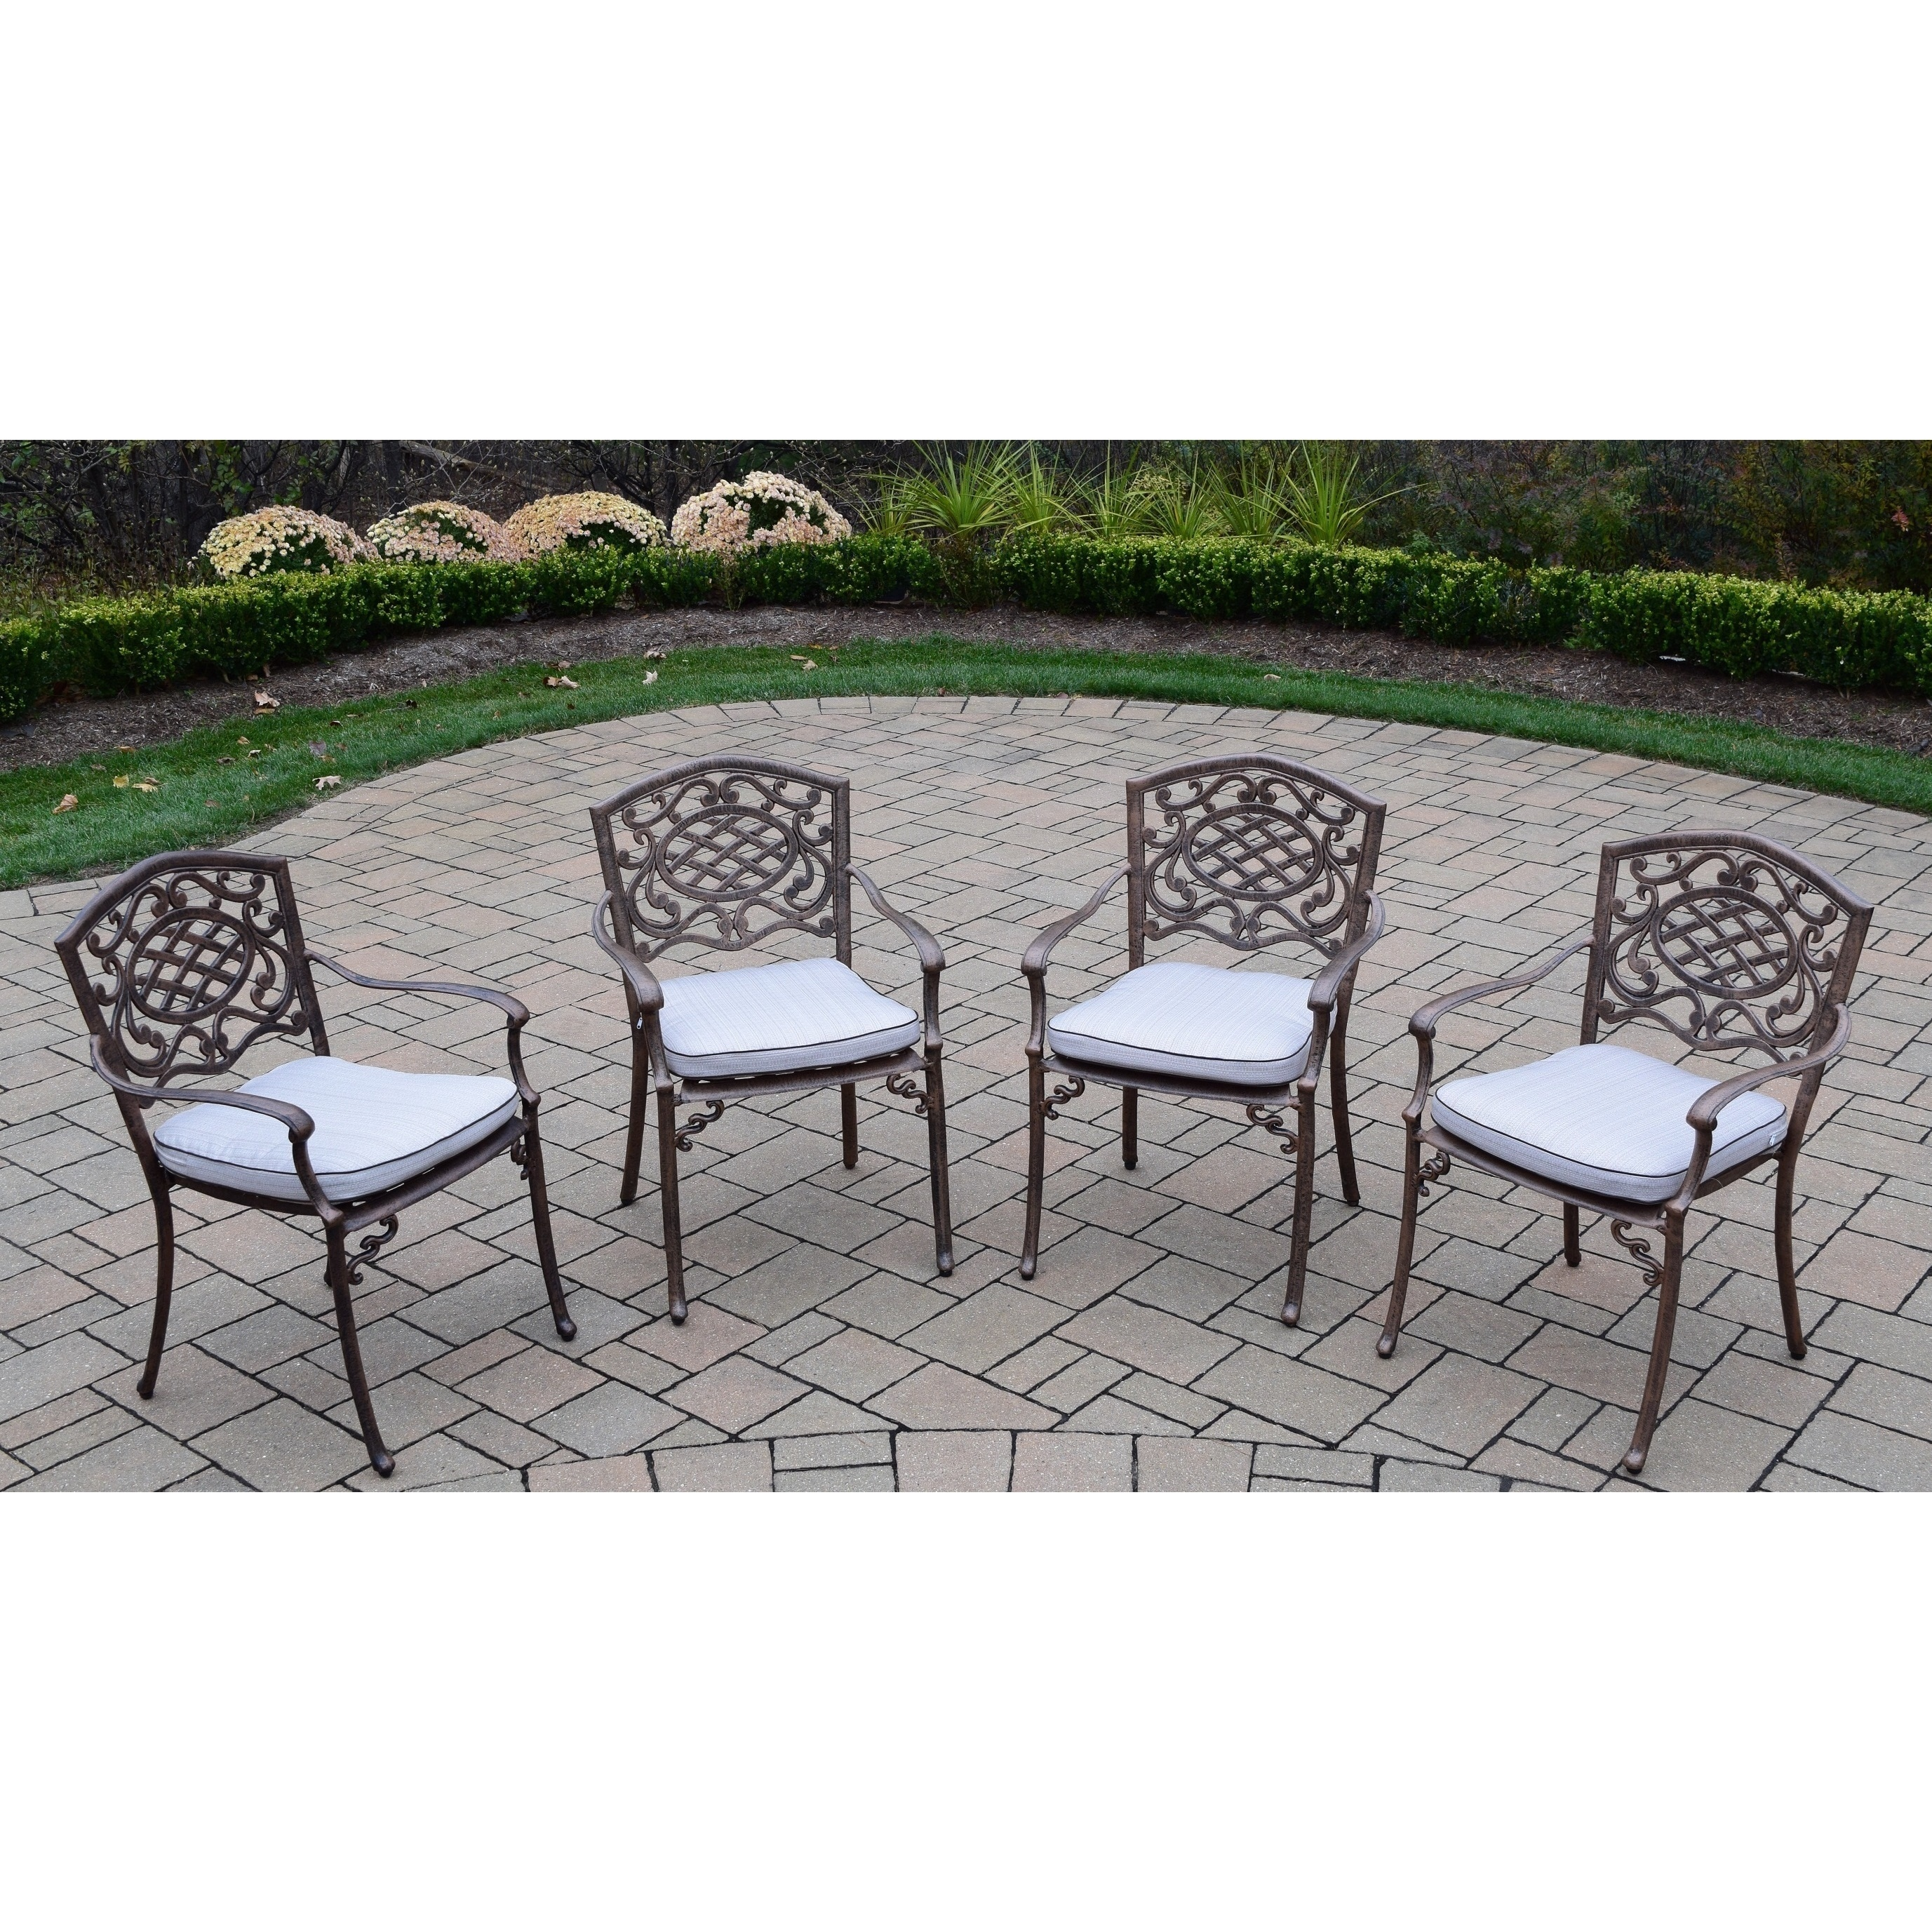 Oakland Living Corporation Dakota Cast Aluminum Welded Stackable Chairs with Cushions (Set of 4)